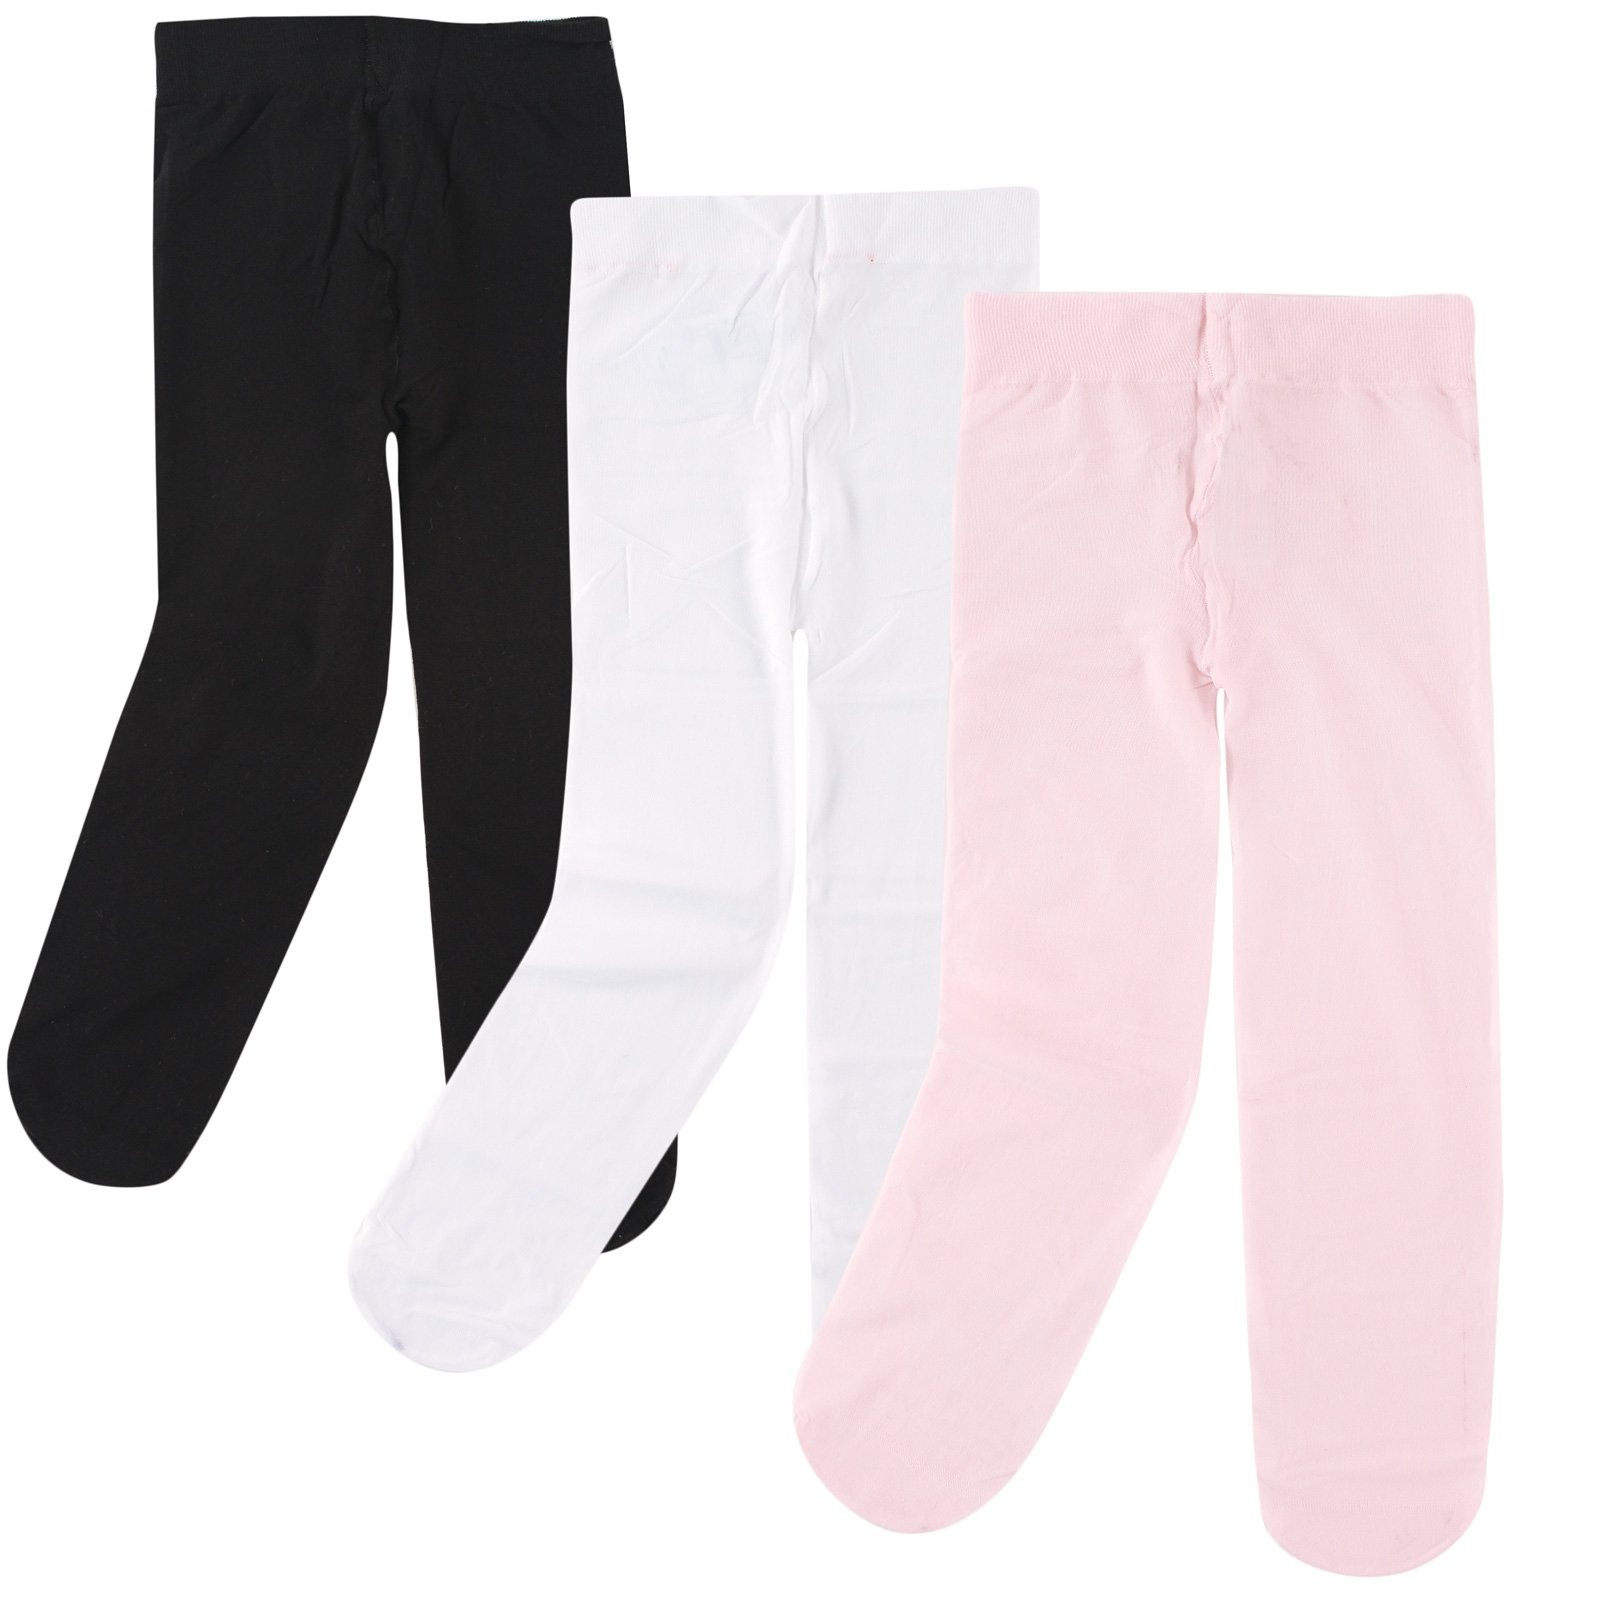 Luvable Friends Baby Girls' Nylon Tights, 3